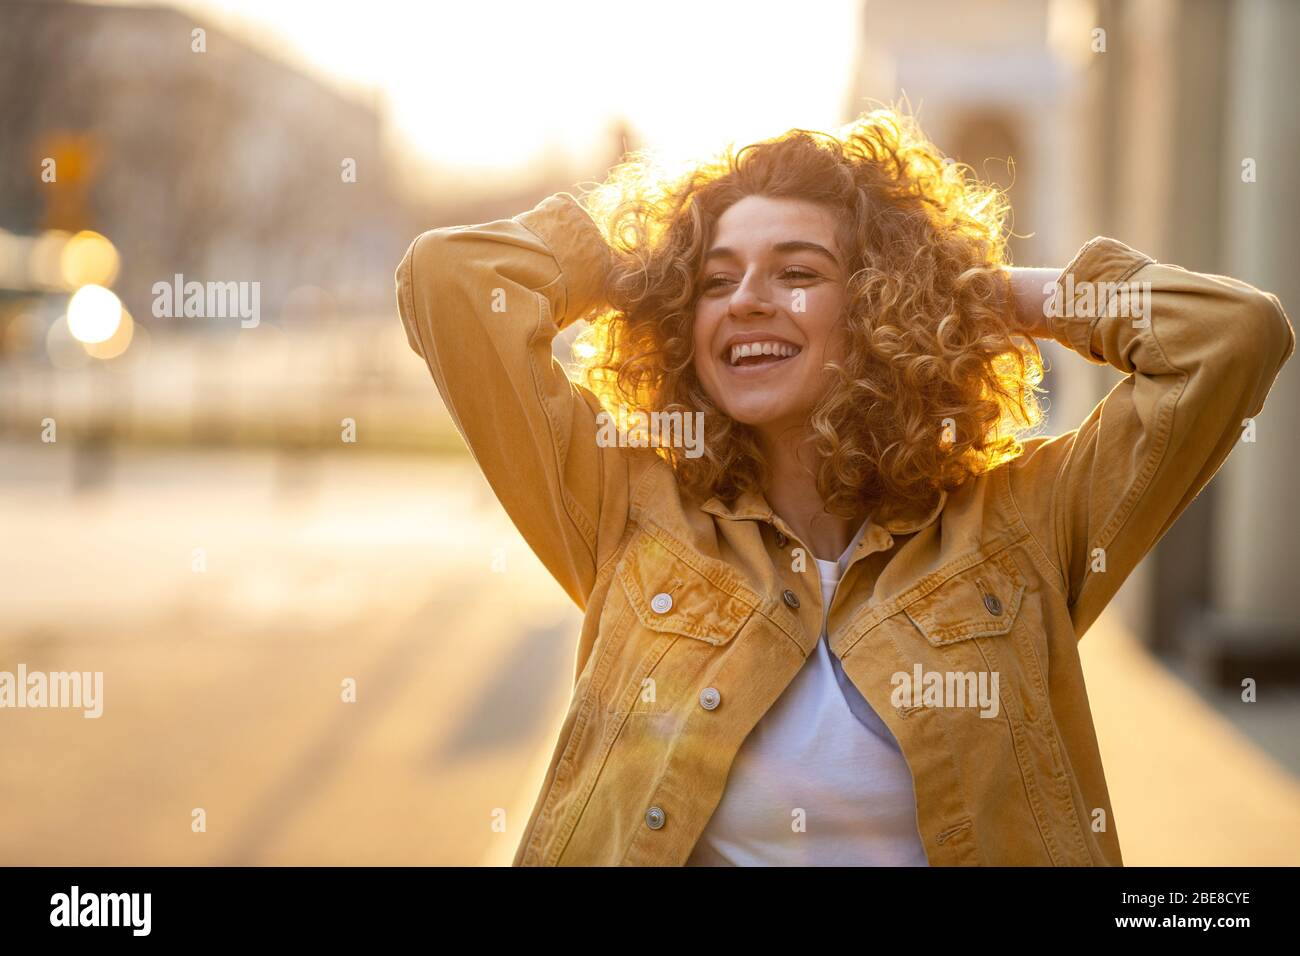 Portrait of young woman with curly hair in the city Stock Photo